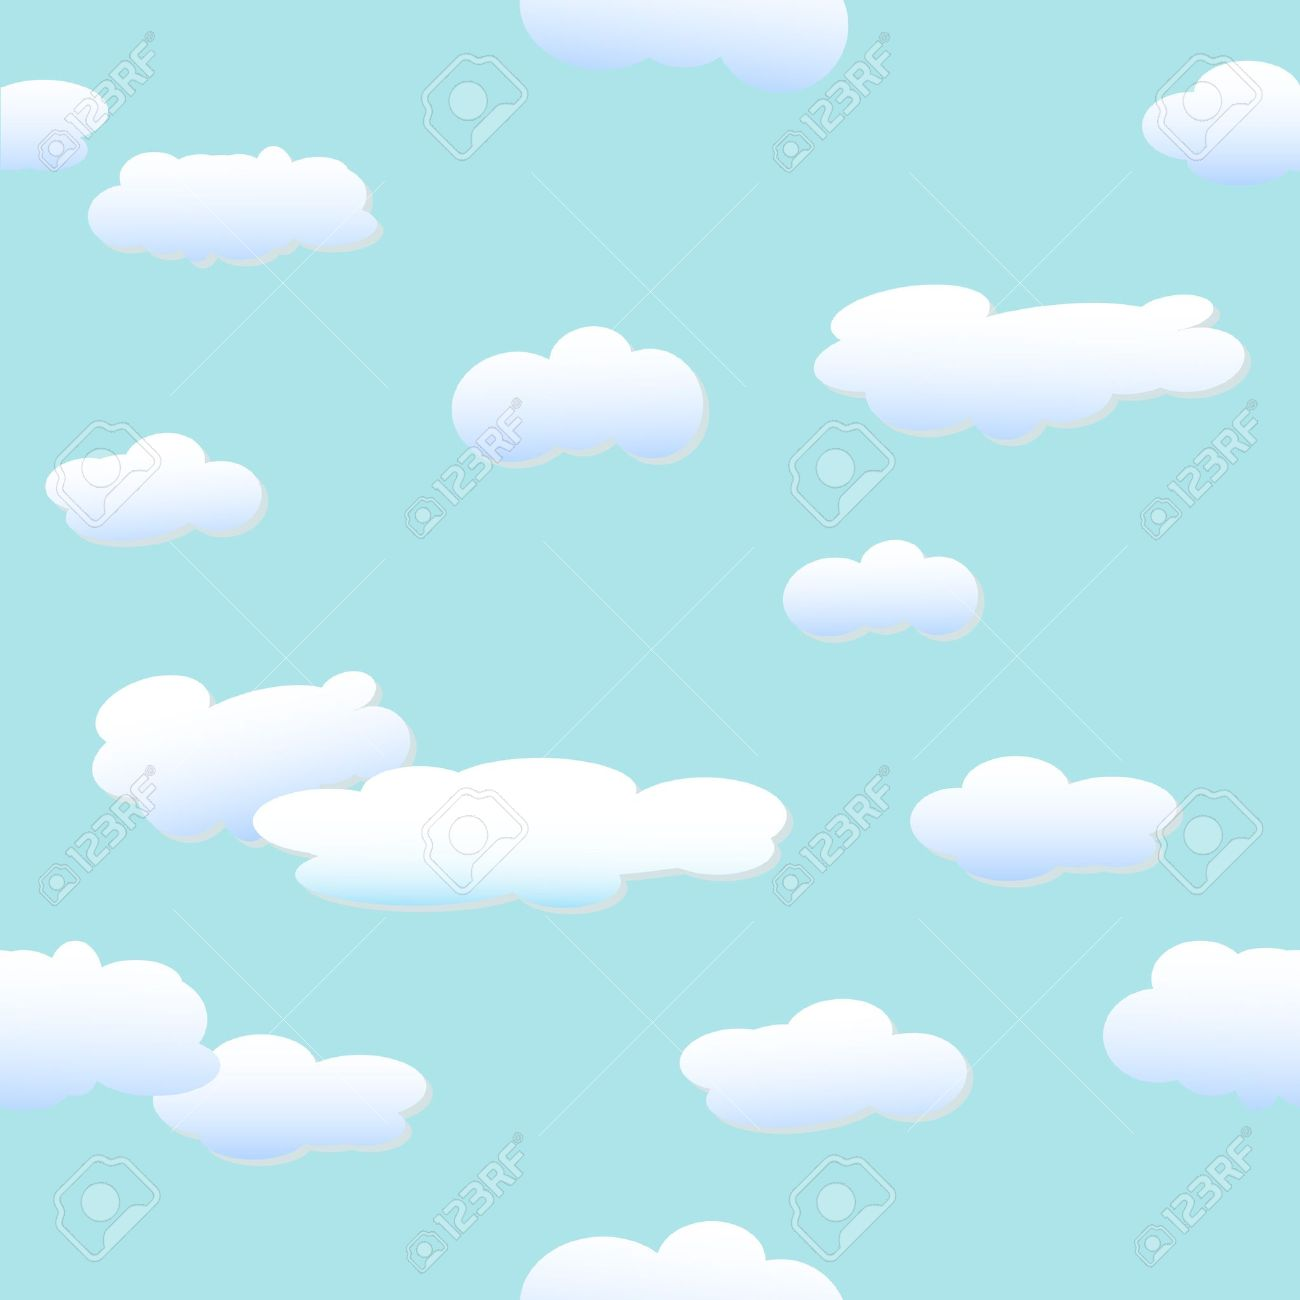 Clouds - vector background